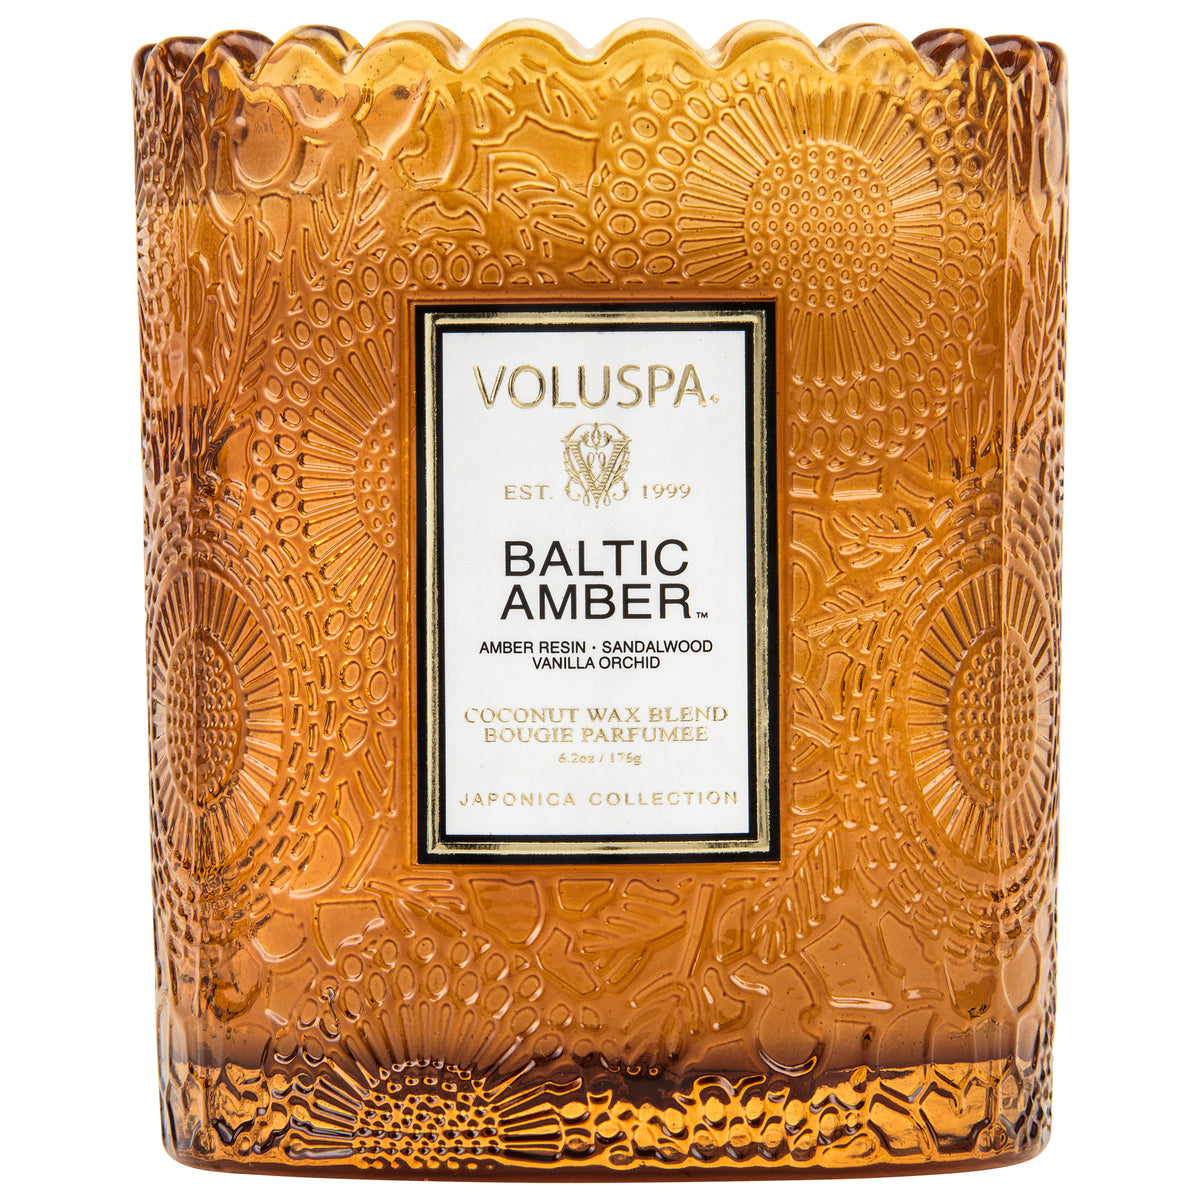 Baltic Amber - Scalloped Edge Candle - 2